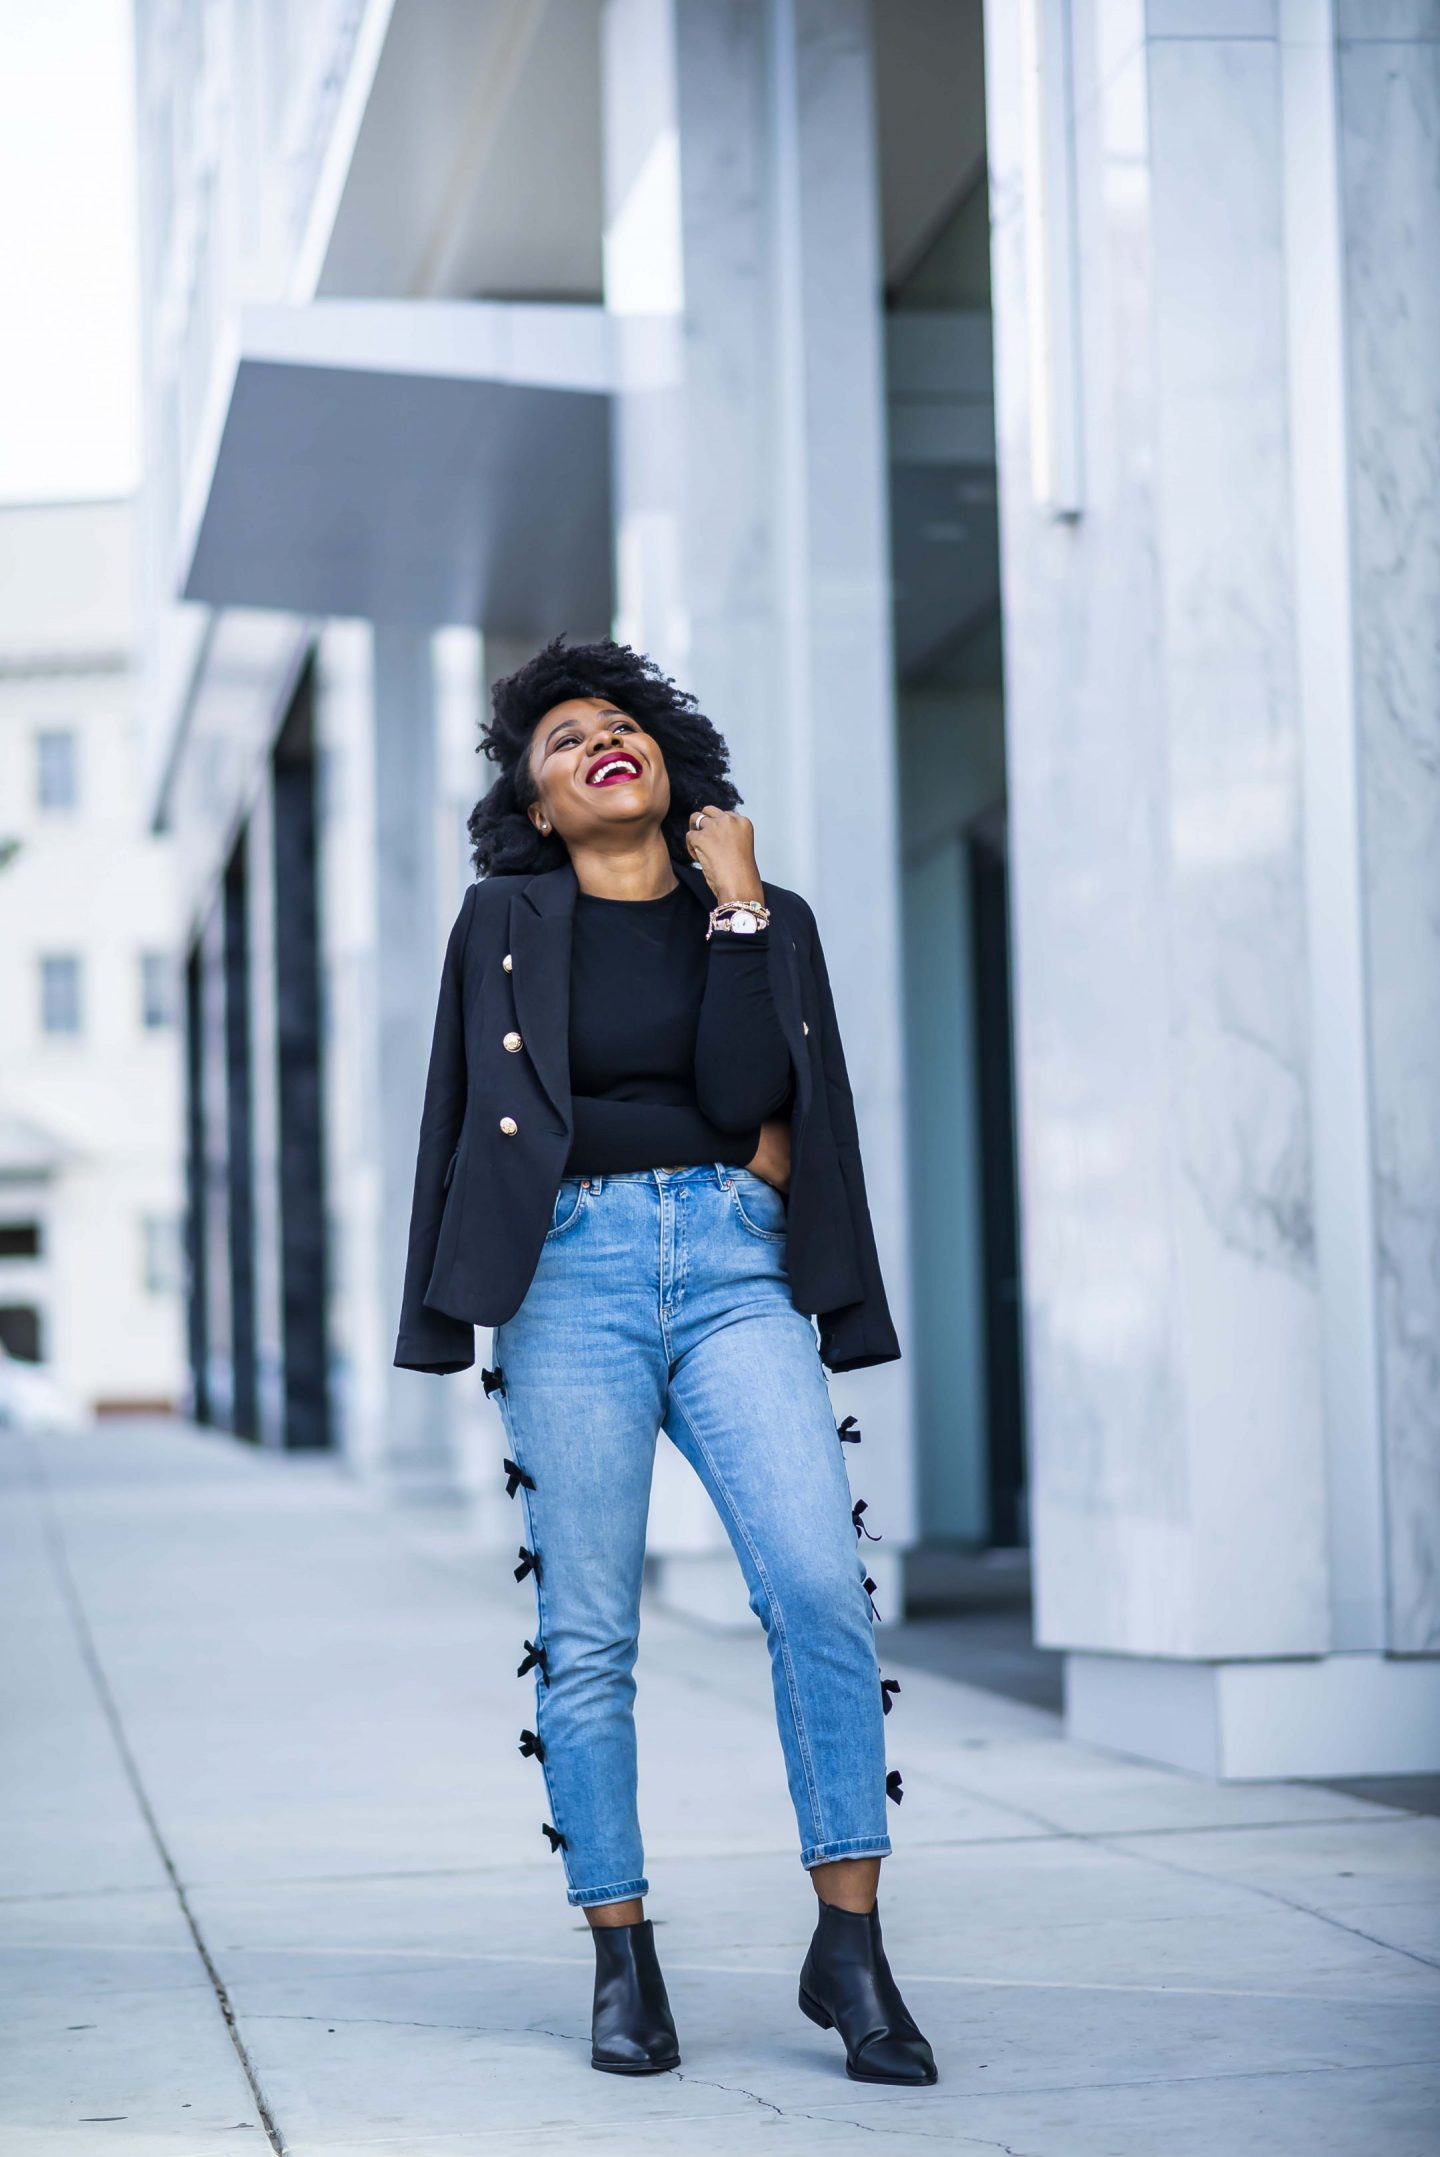 Get Boot season with ASOS: One Chelsea boots styled 3 ways